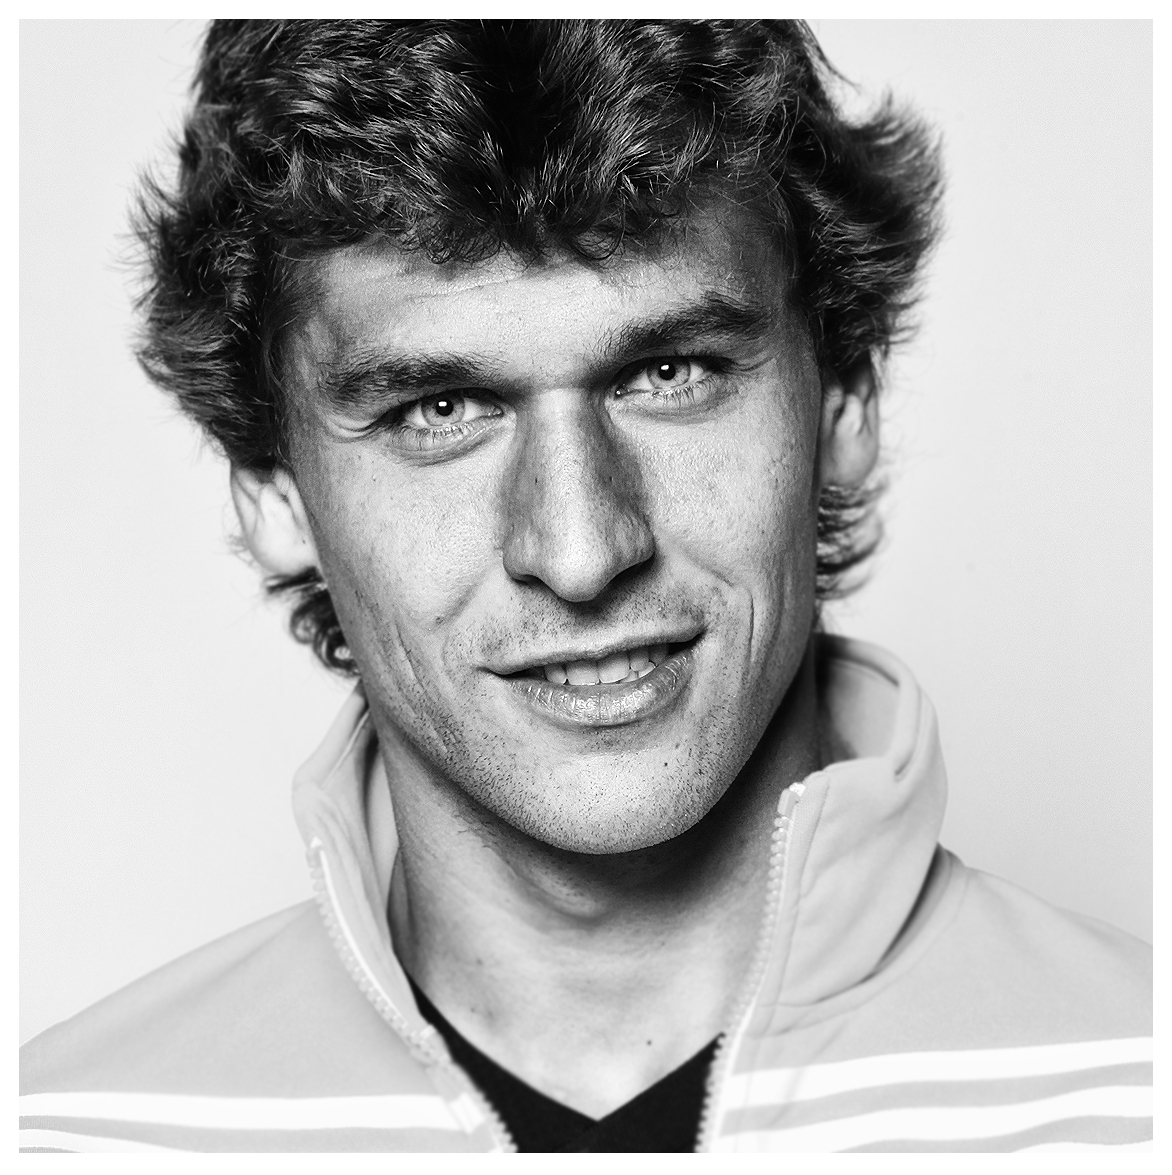 Fernando Llorente photo 15 of 31 pics, wallpaper - photo ...